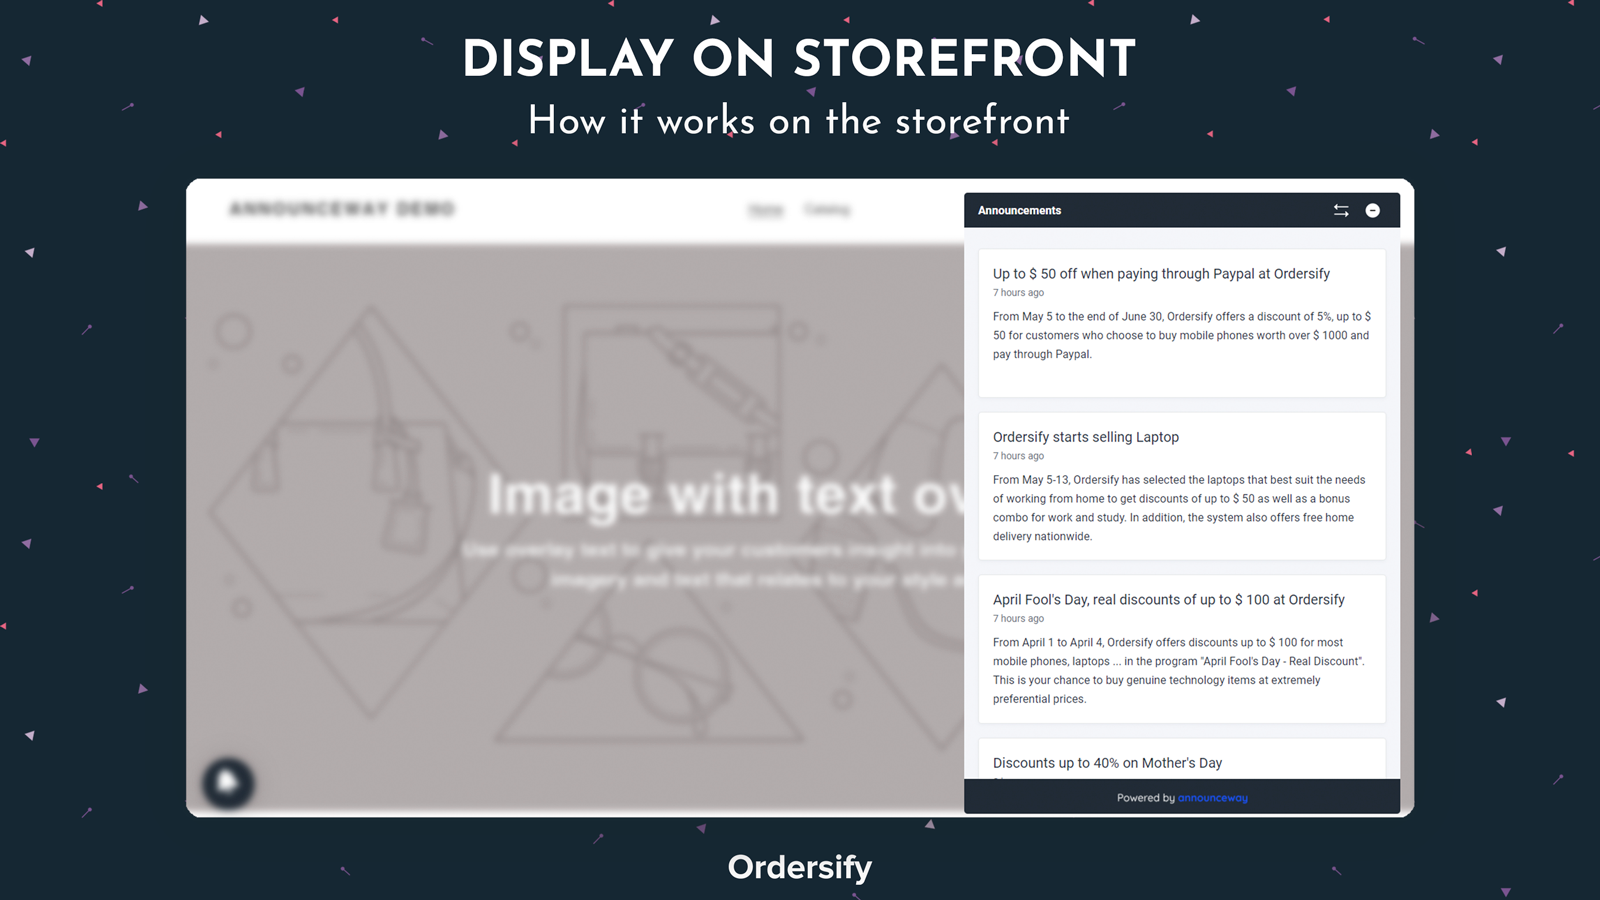 Display on storefront